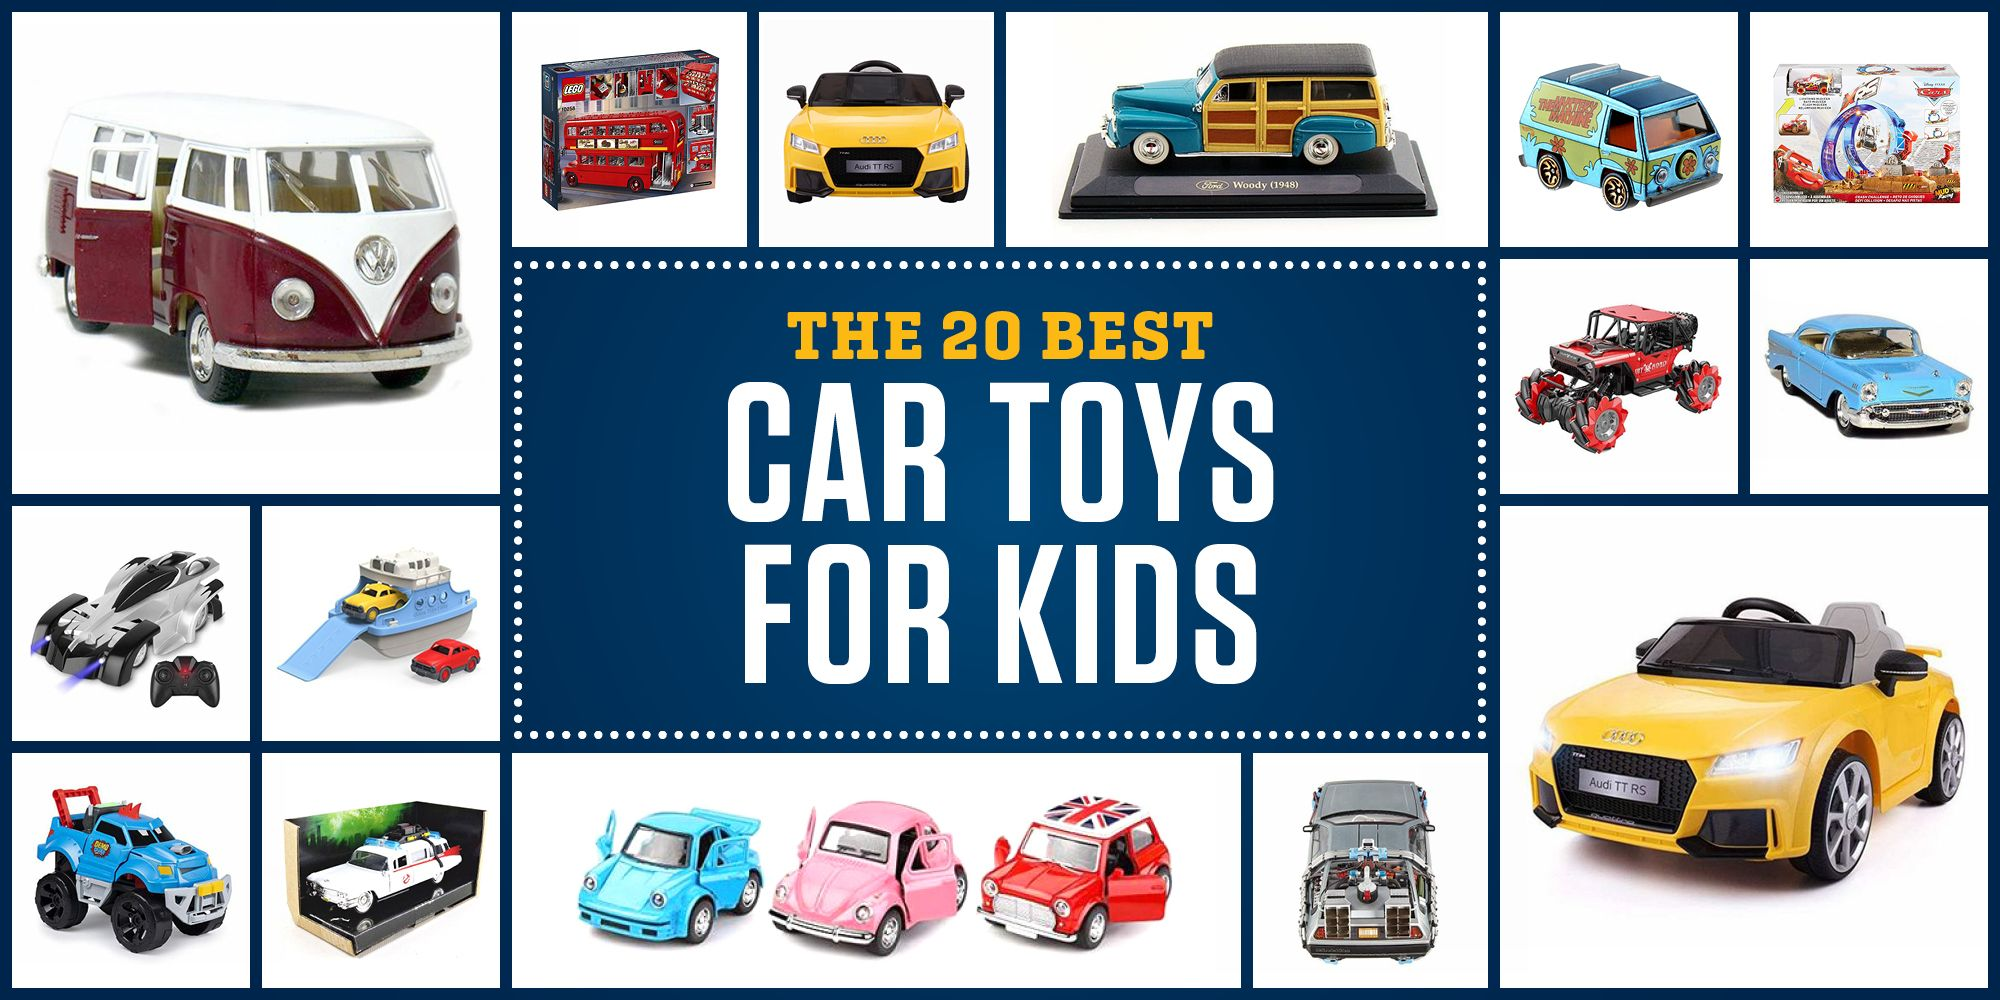 Our 20 Favorite Car Toys for Kids